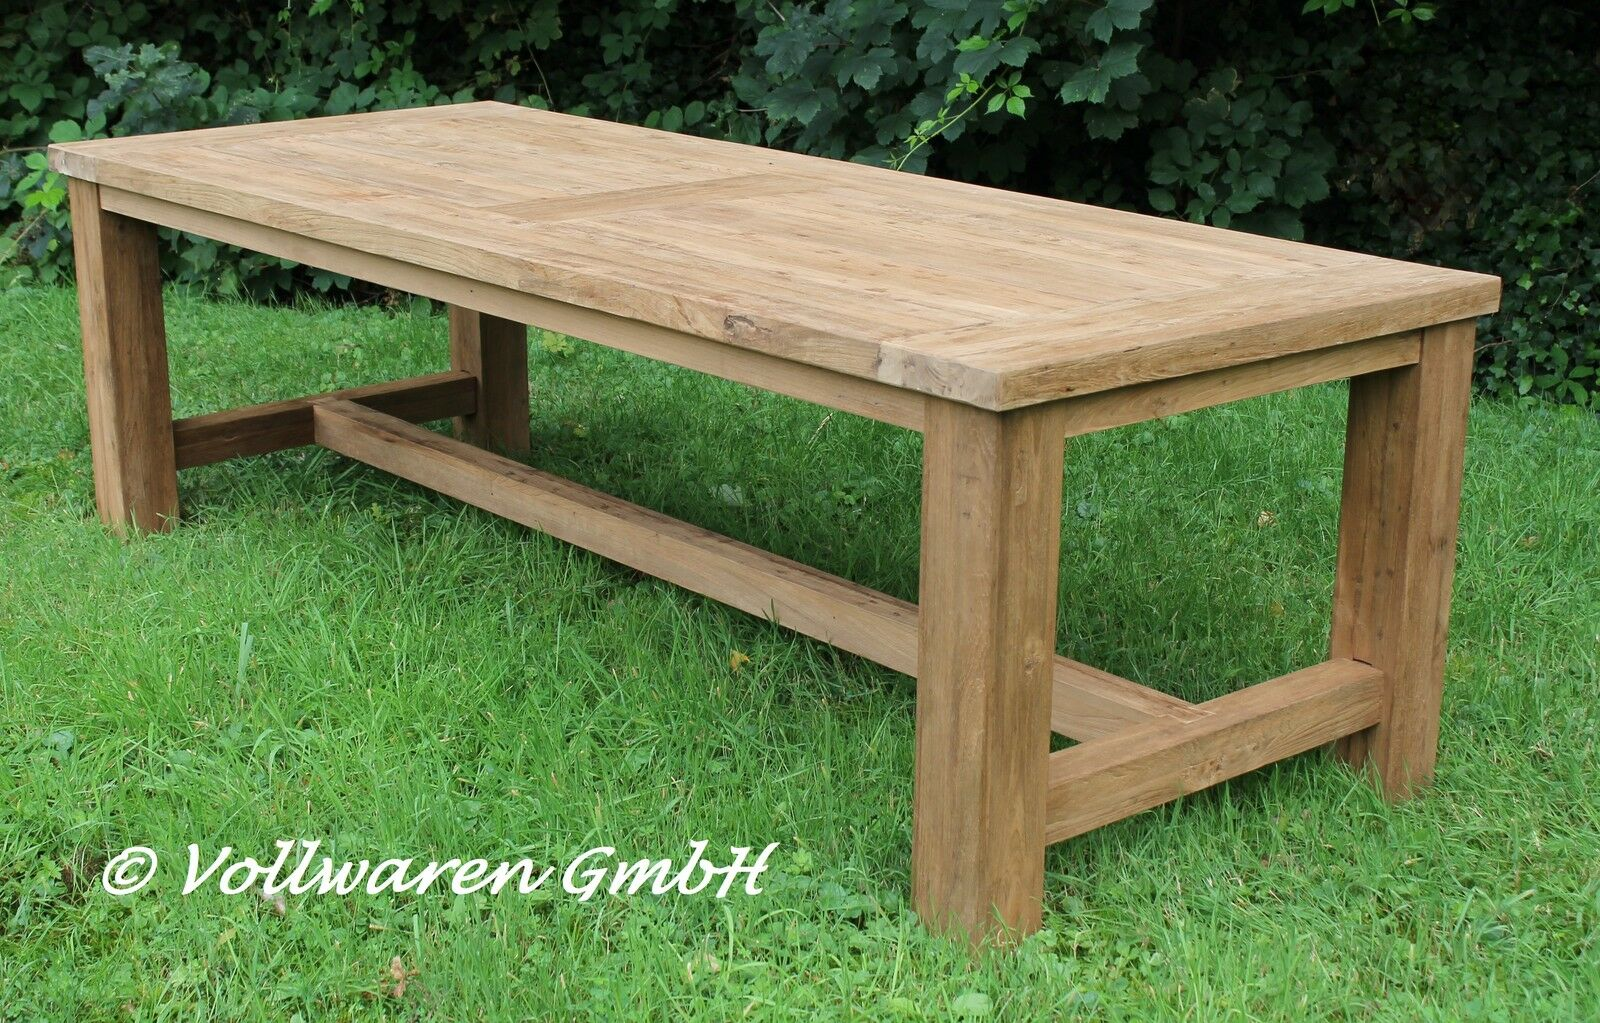 teak gartentisch tyrion 220x100 teakholz antik massiv tisch tafel gartenm bel eur. Black Bedroom Furniture Sets. Home Design Ideas